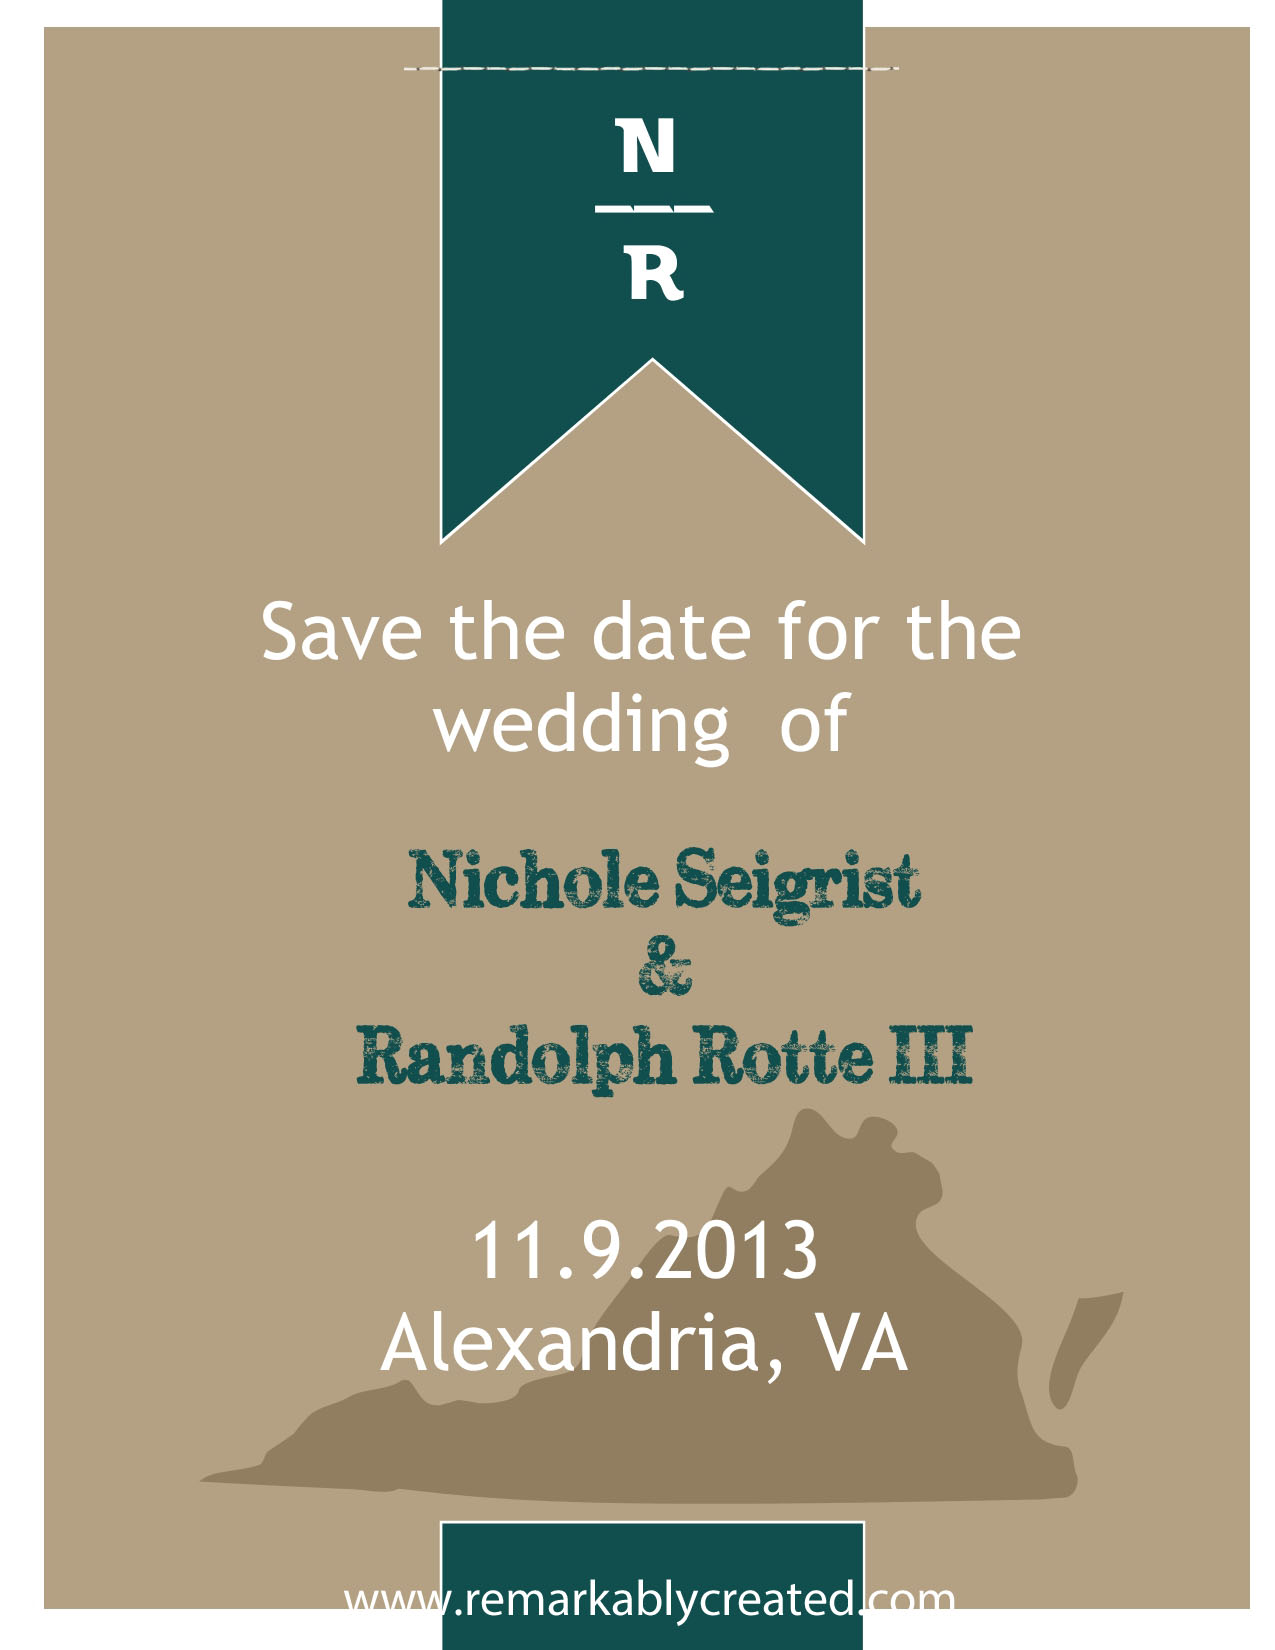 Save The Date Cards With StampinUP RemARKable Creations